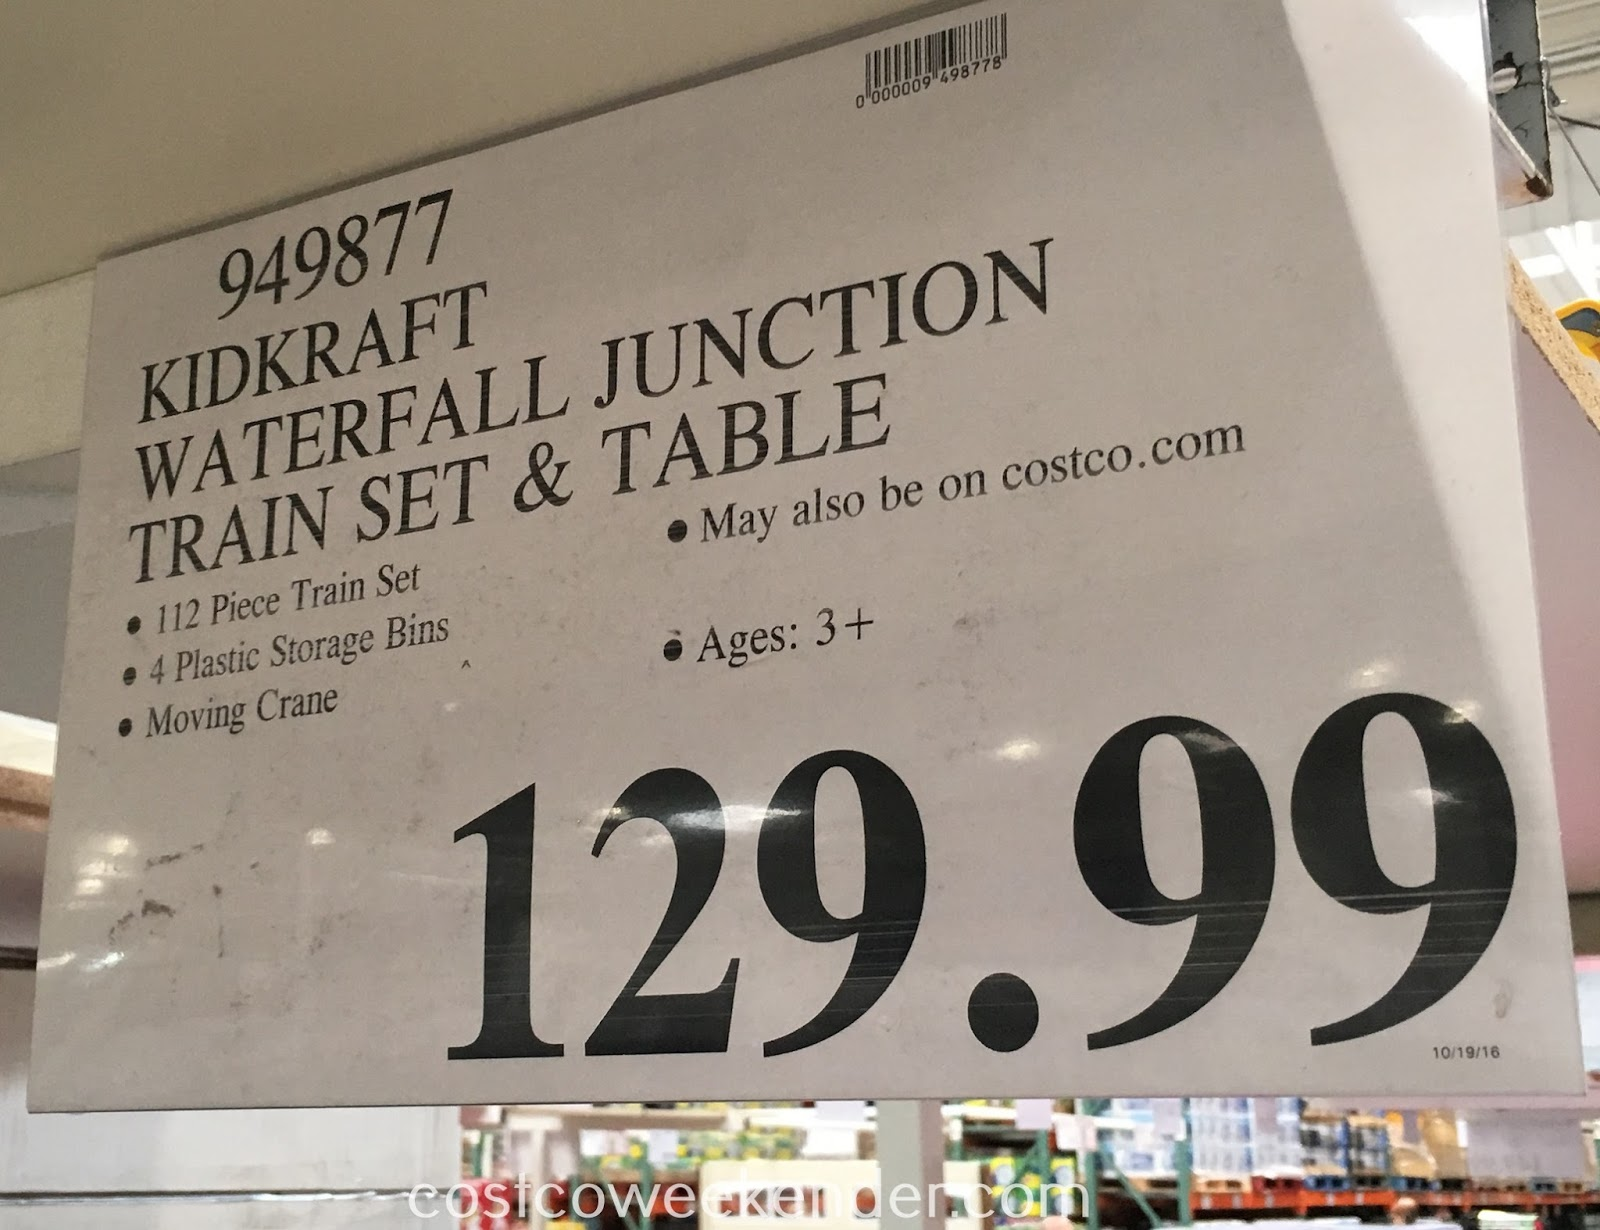 Deal for the KidKraft Waterfall Junction Train Set and Table at Costco